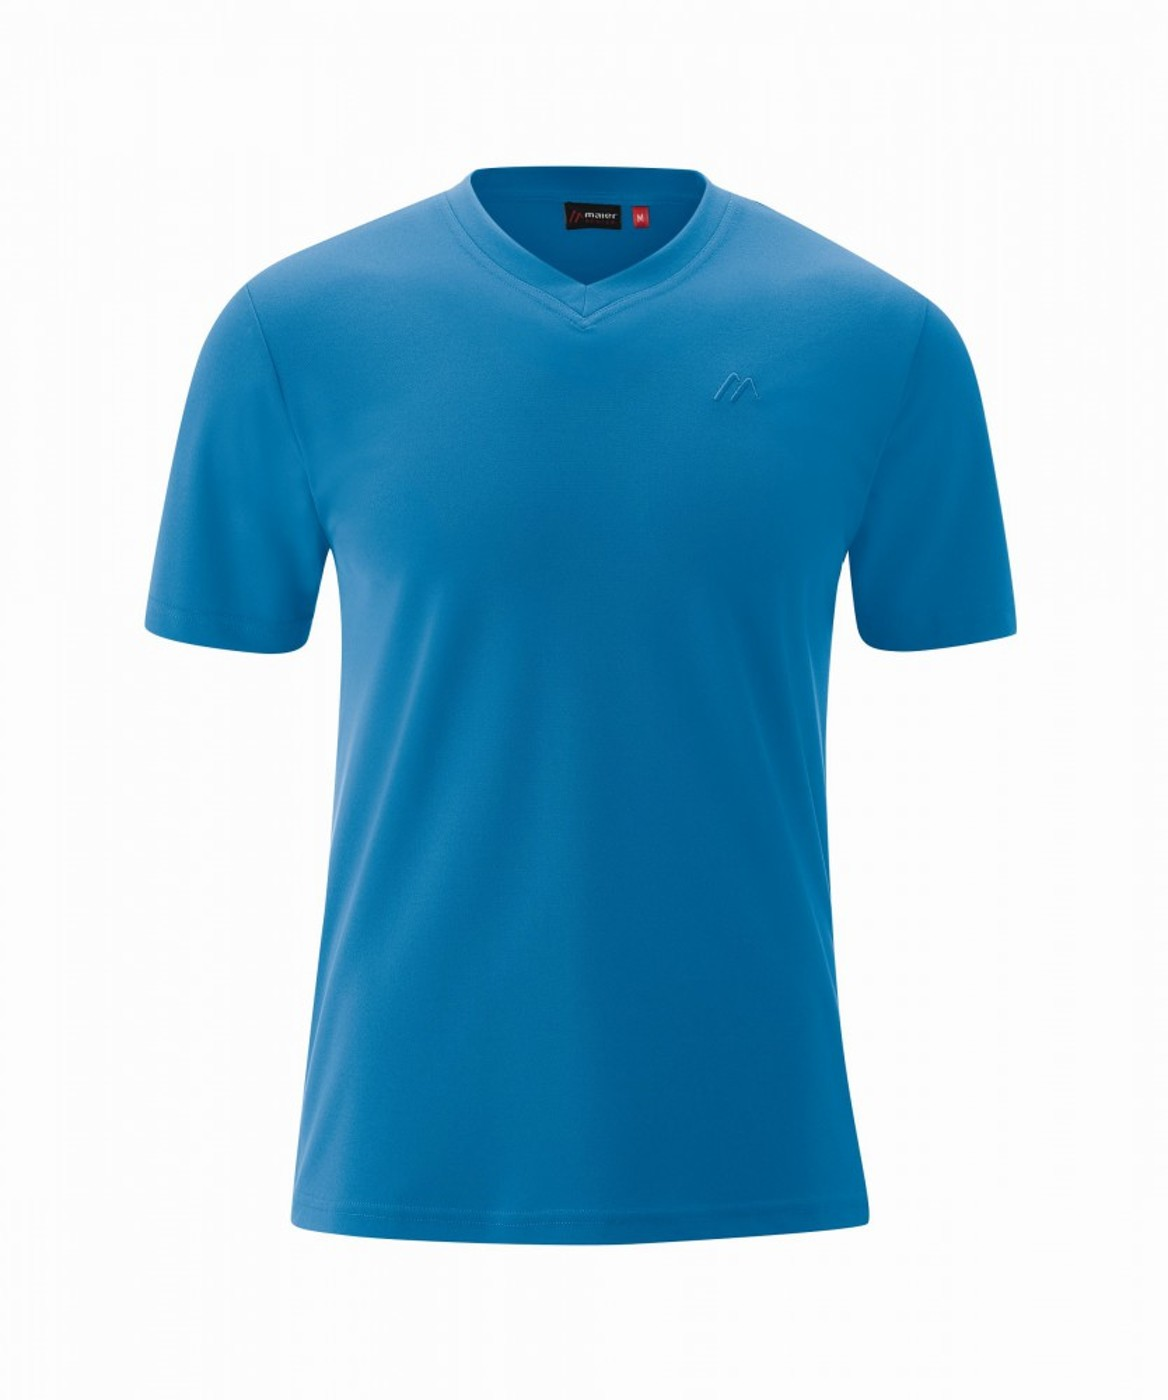 MAIER SPORTS He-Shirt 1/2 Arm Wali - Herren